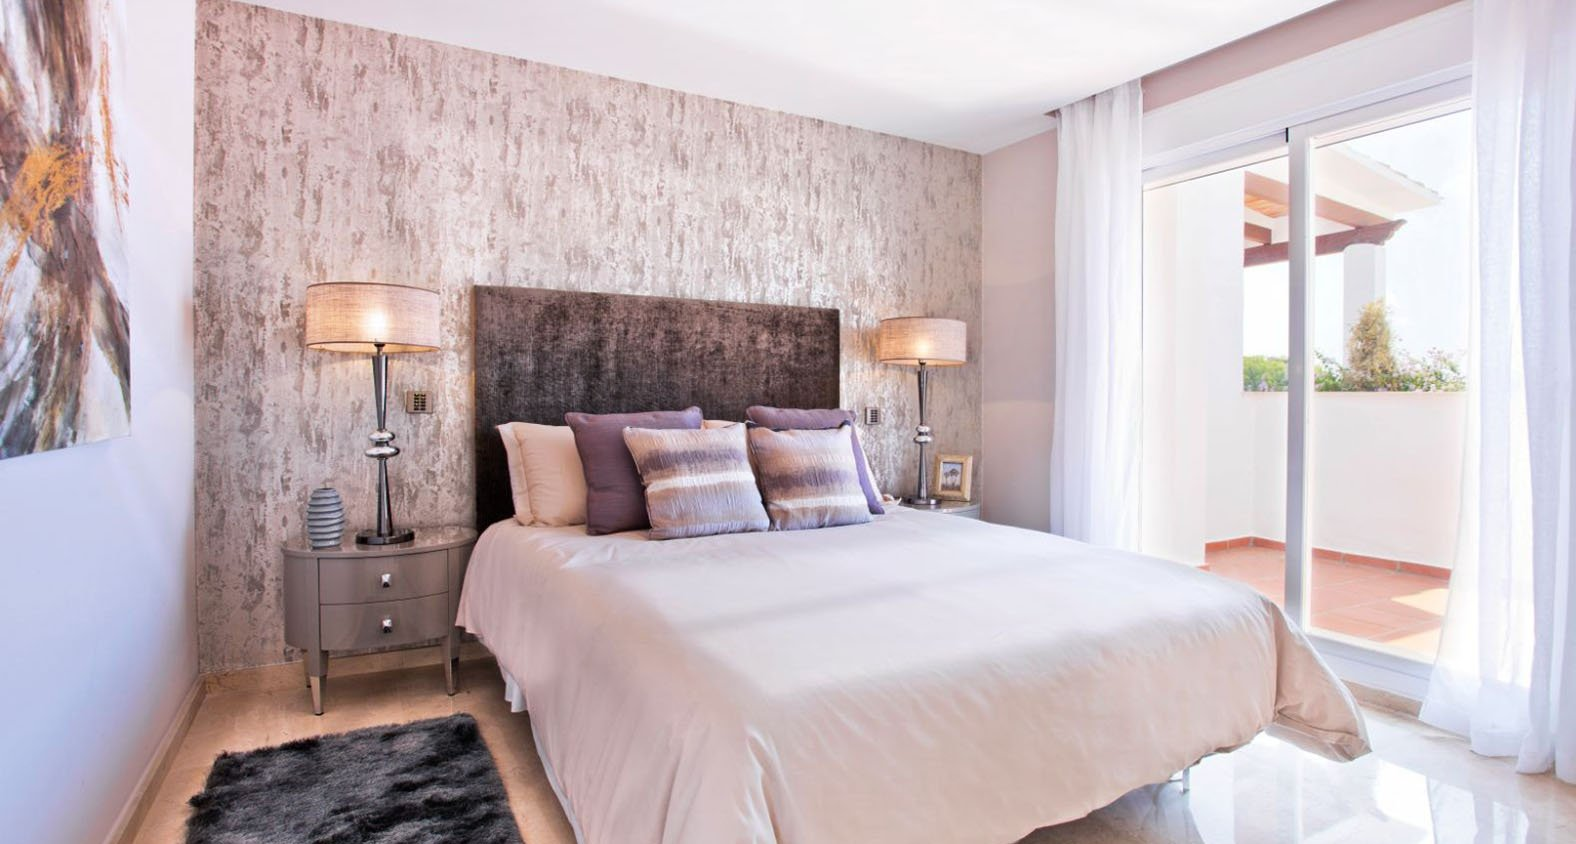 Aloha Royal: Refurbished apartments andpenthouses in Nueva Andalucía